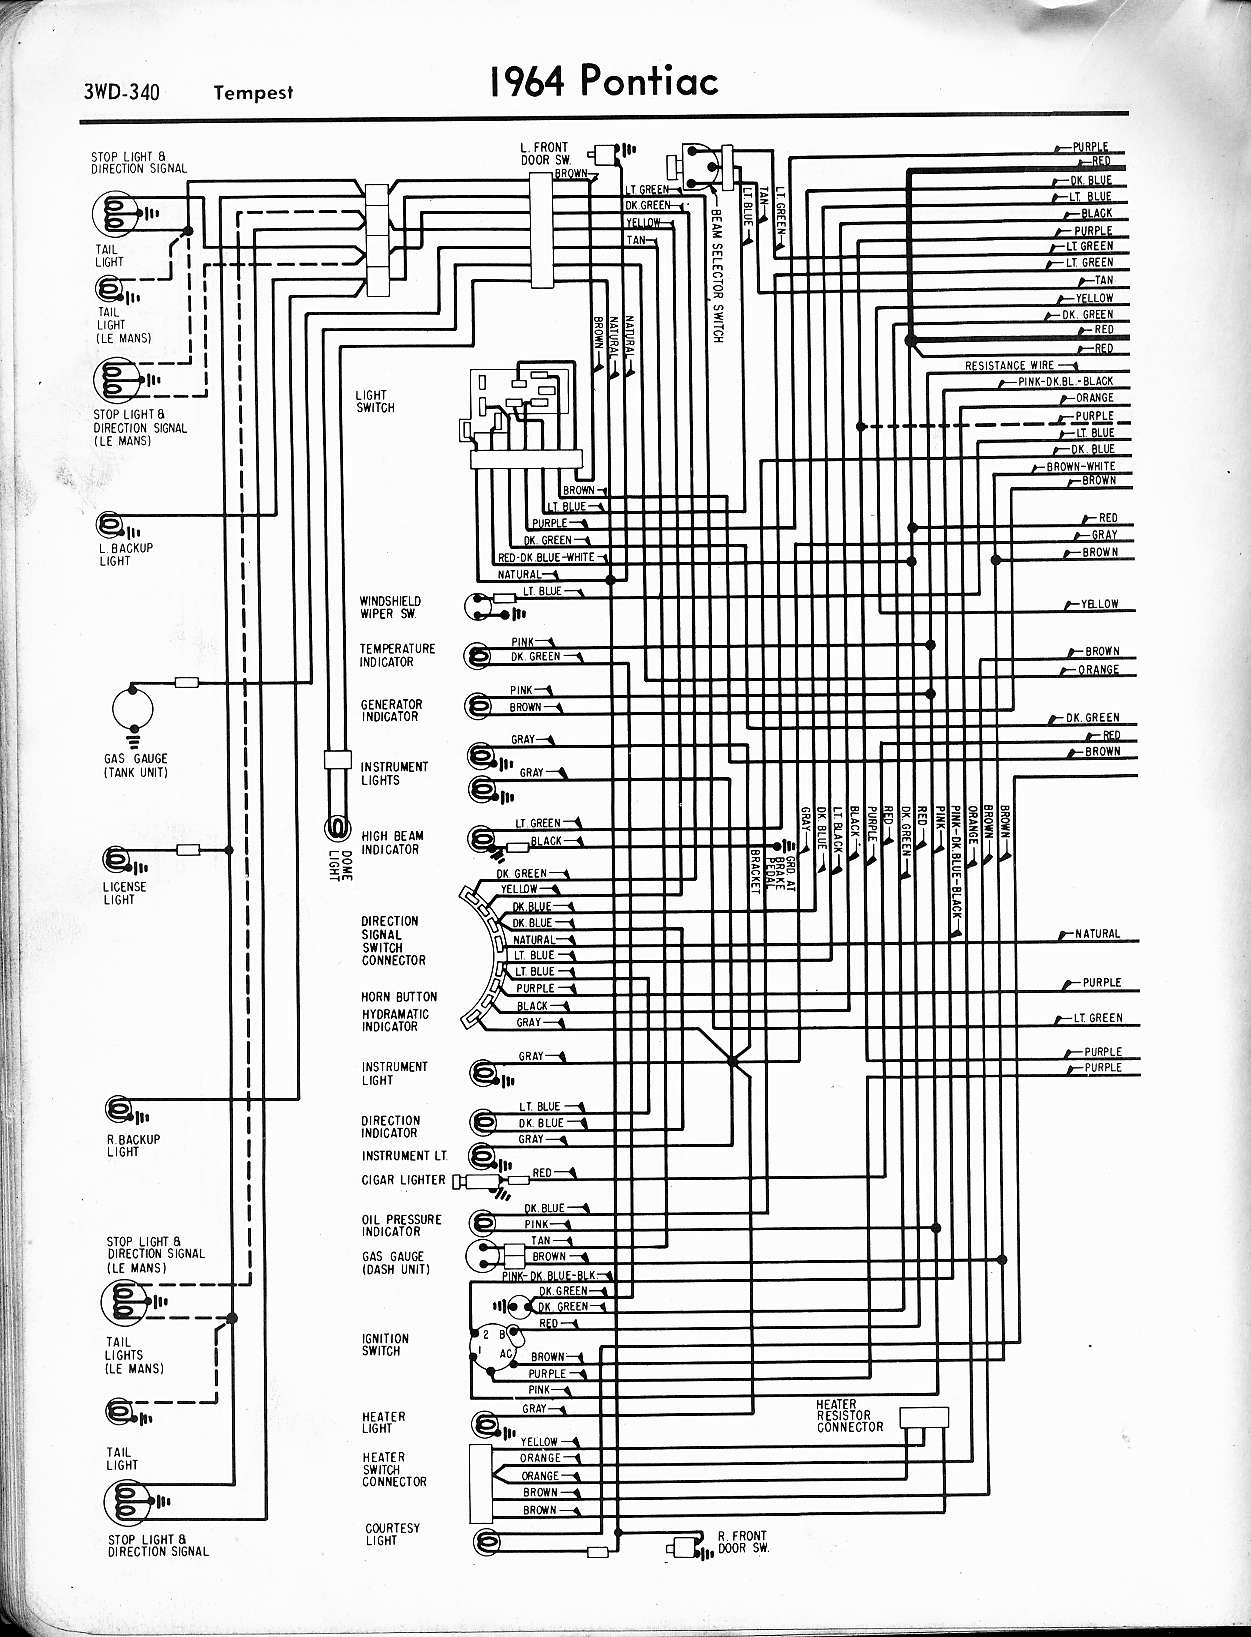 DIAGRAM] 67 Pontiac Tach Wiring Diagram FULL Version HD Quality Wiring  Diagram - LOTH-DIAGRAM.EXPERTSUNIVERSITY.ITDiagram Database - Expertsuniversity.it